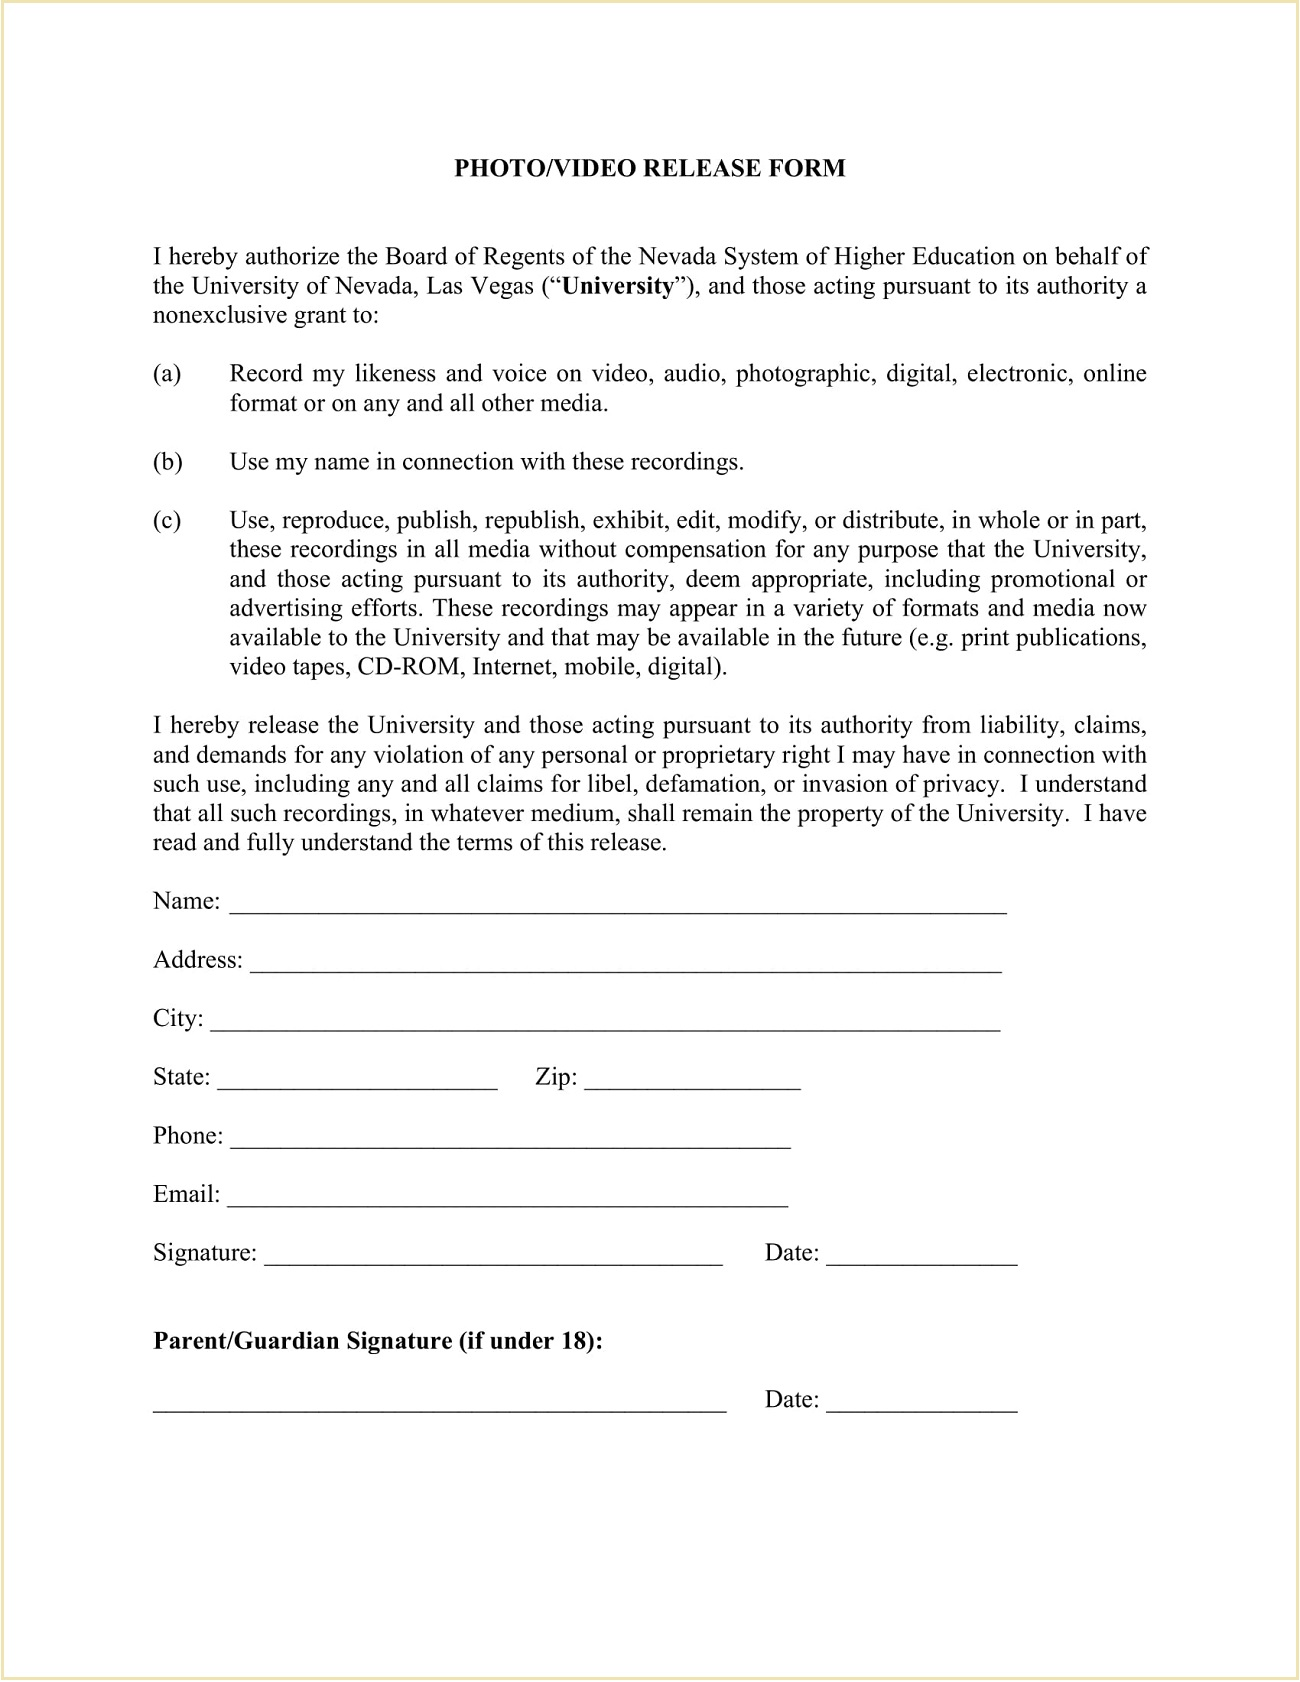 Media Photo Video Release Form Template PDF